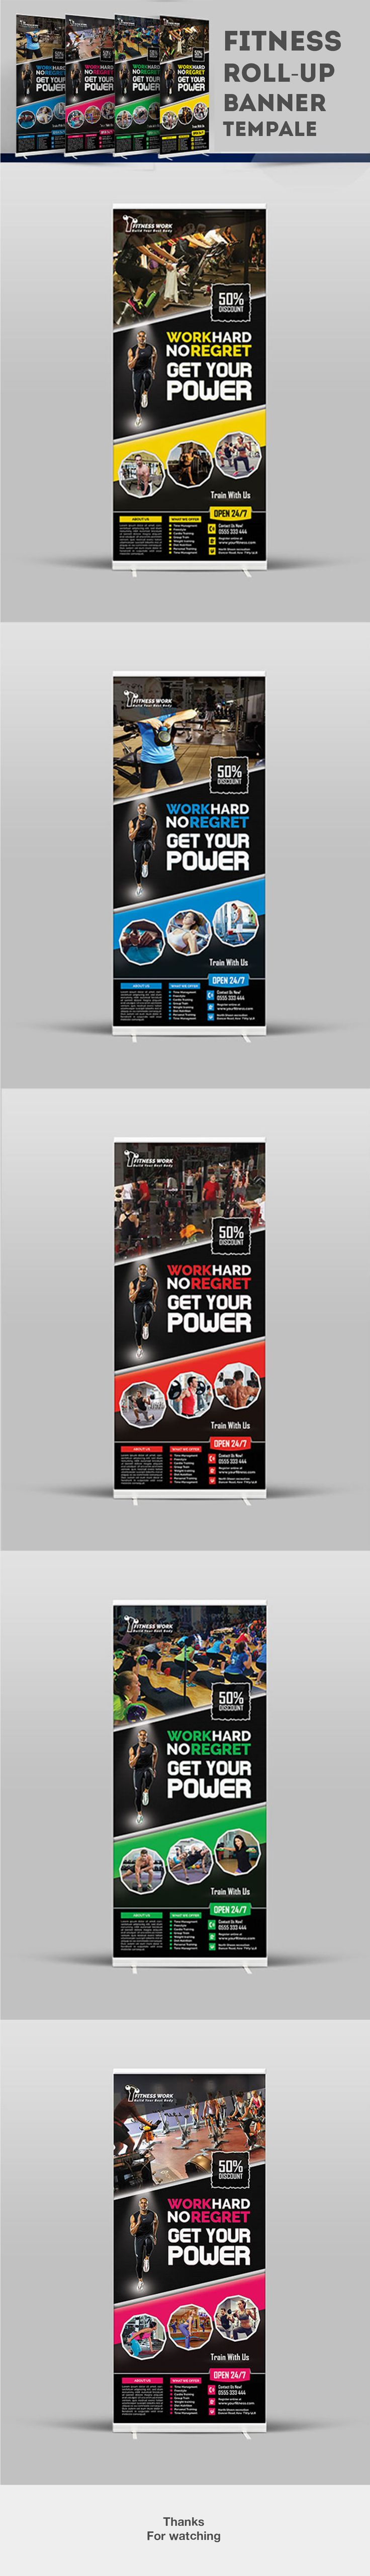 Fitness Roll-up banner template on Behance